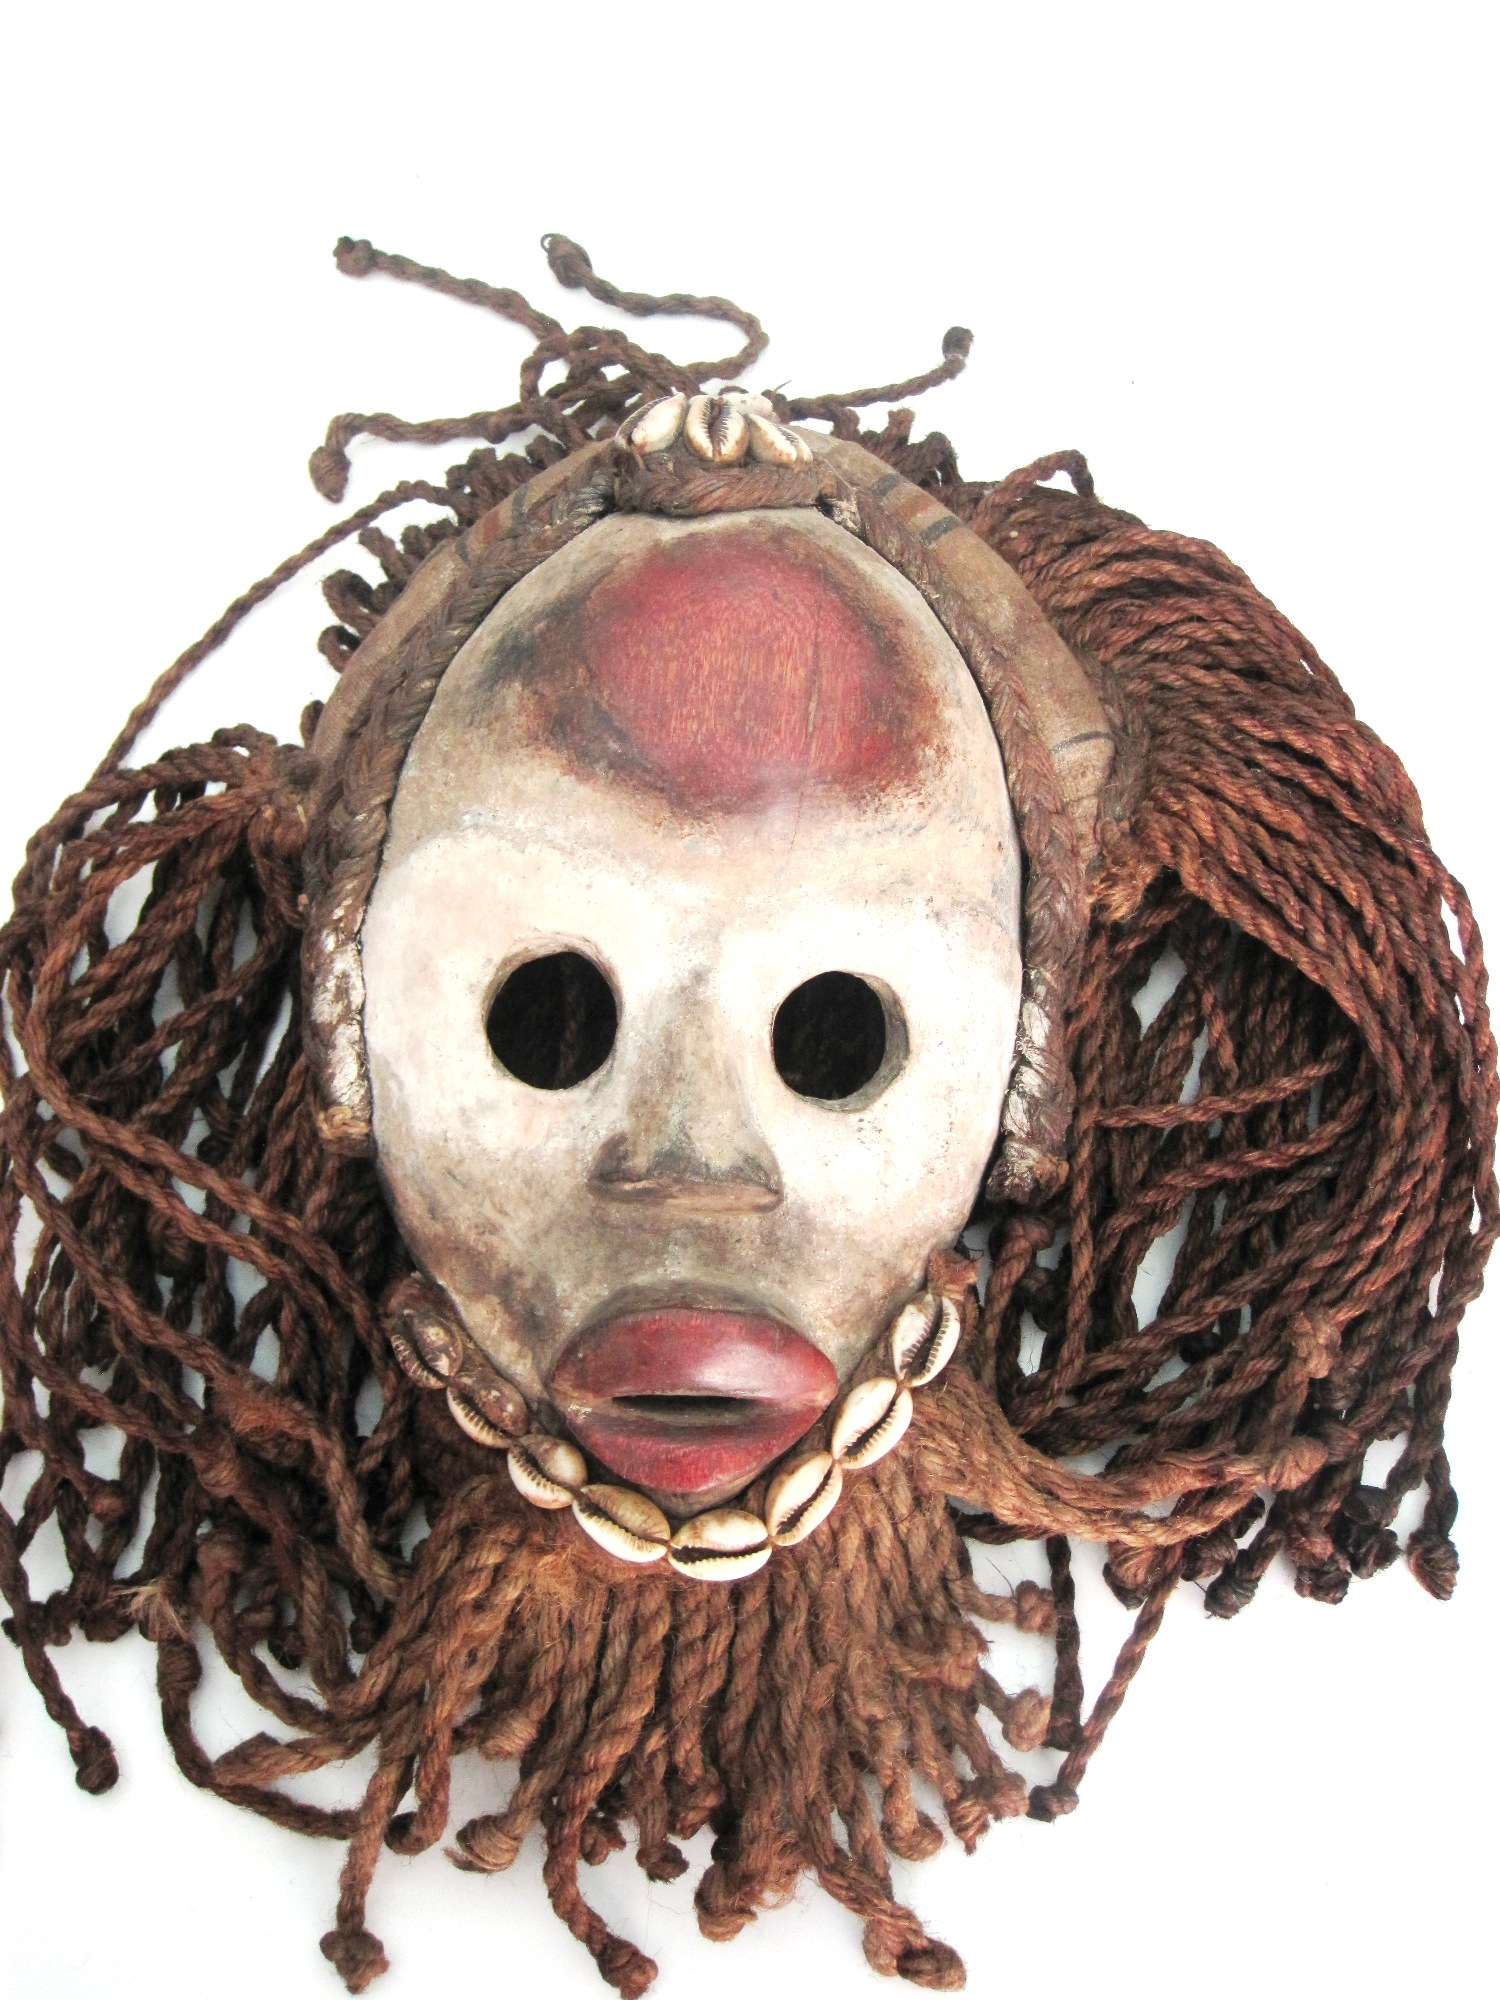 Masks from Liberia